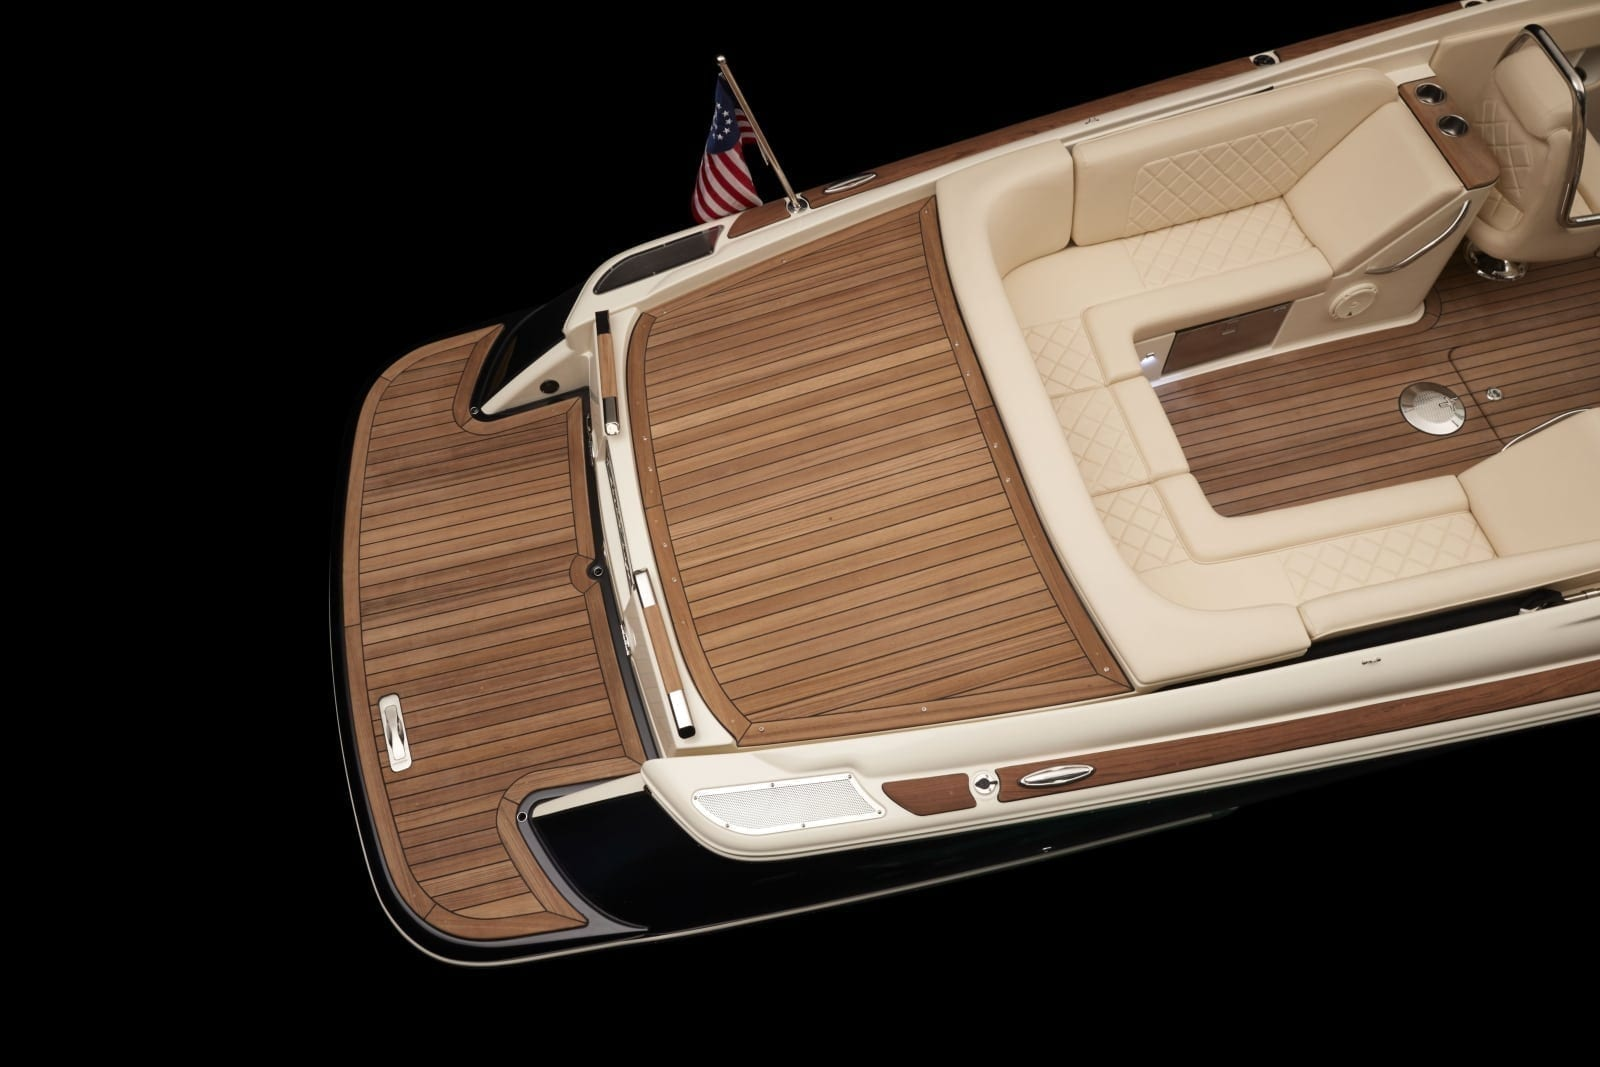 Chris Craft Corsair 27 Aft Swim Deck Overhead View